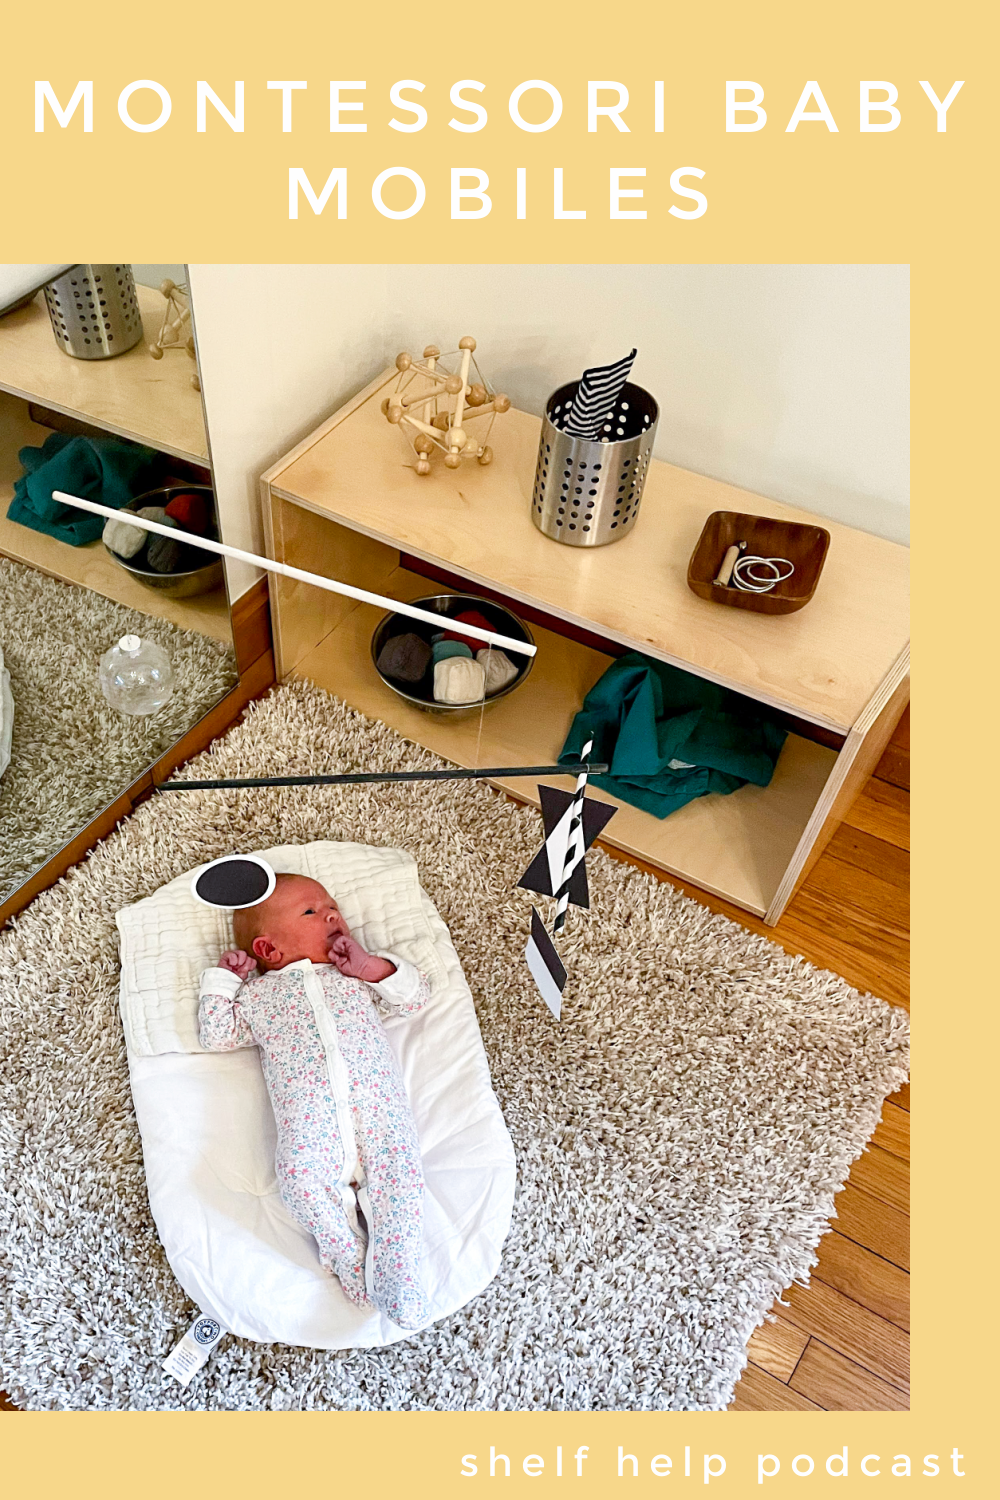 In this Montessori parenting podcast we talk about play with slightly older newborns including the progression of Montessori baby mobiles.